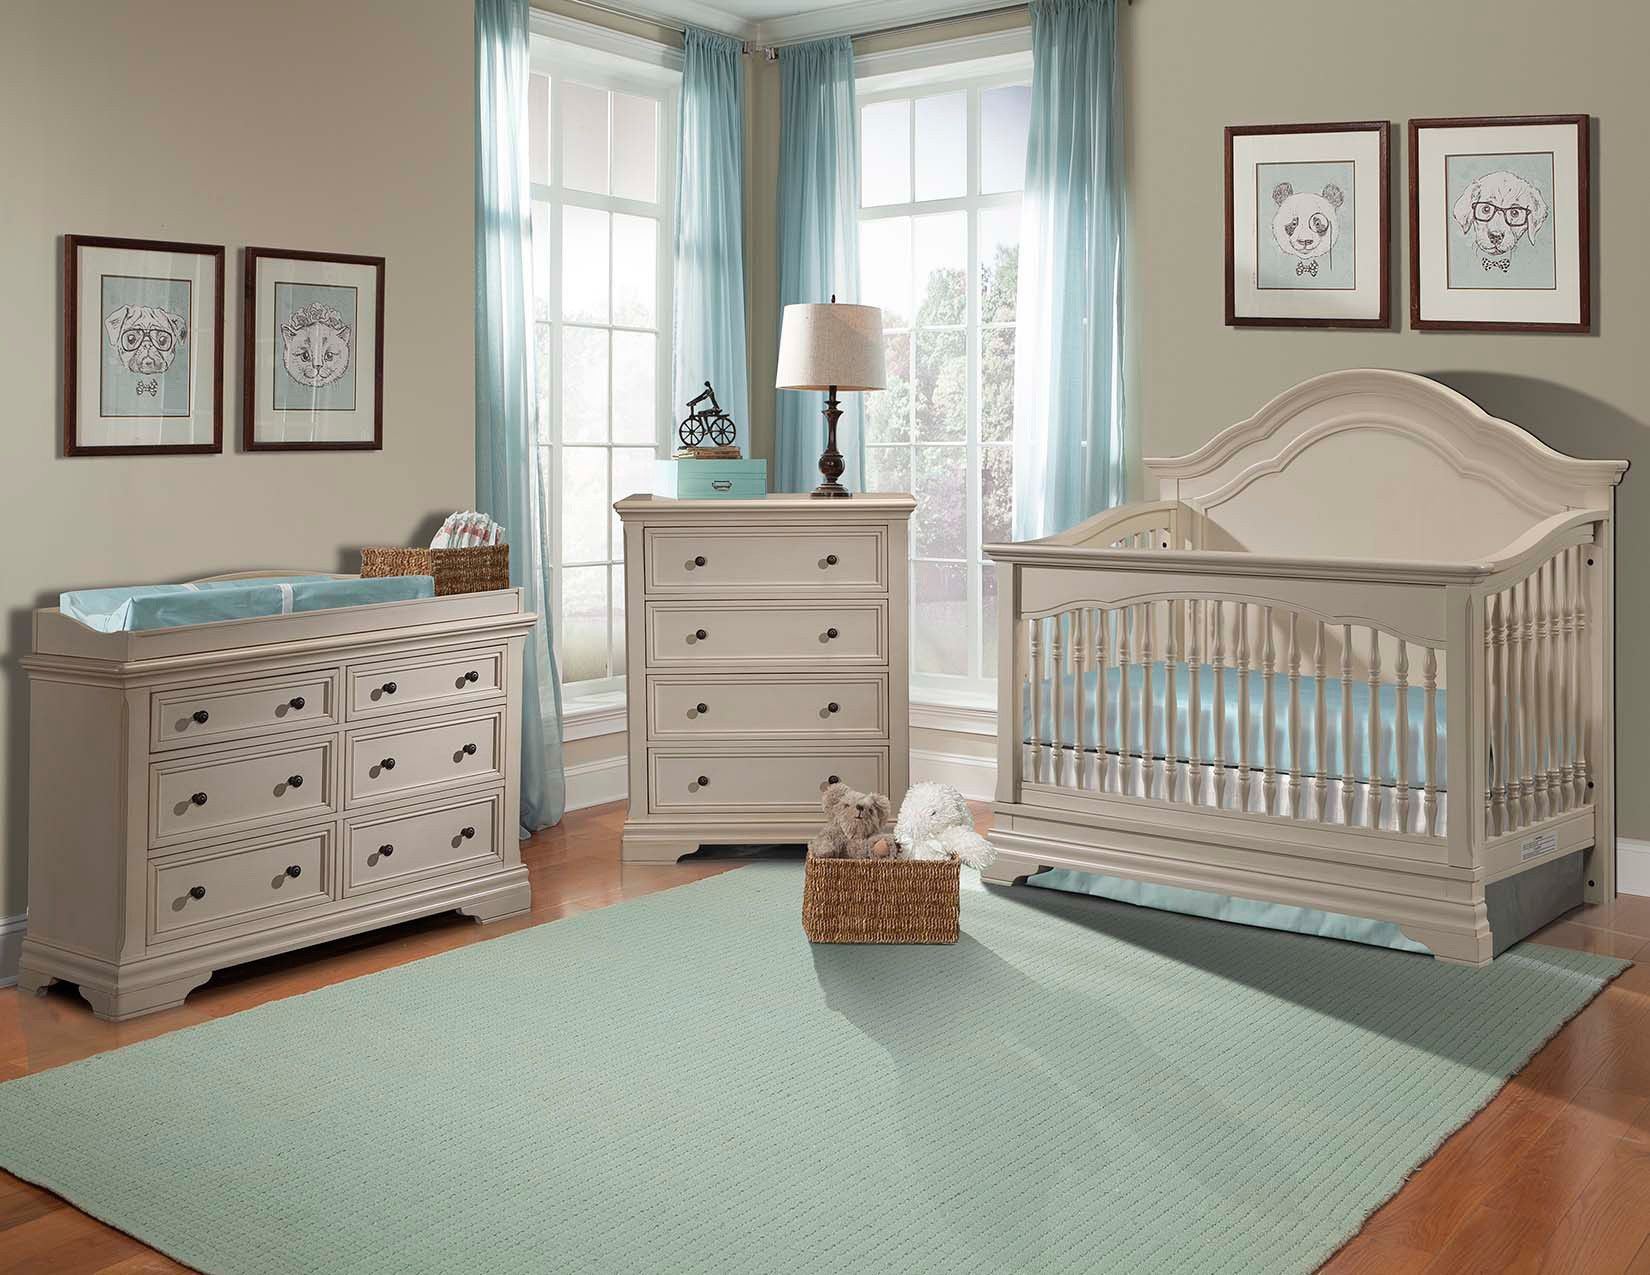 Baby cribs with matching dresser - Furniture Might Appear Lighter In Person Athena Collection Convertible Crib Double Dresser Dresser Chest Are Included The Athena Collection Offers A